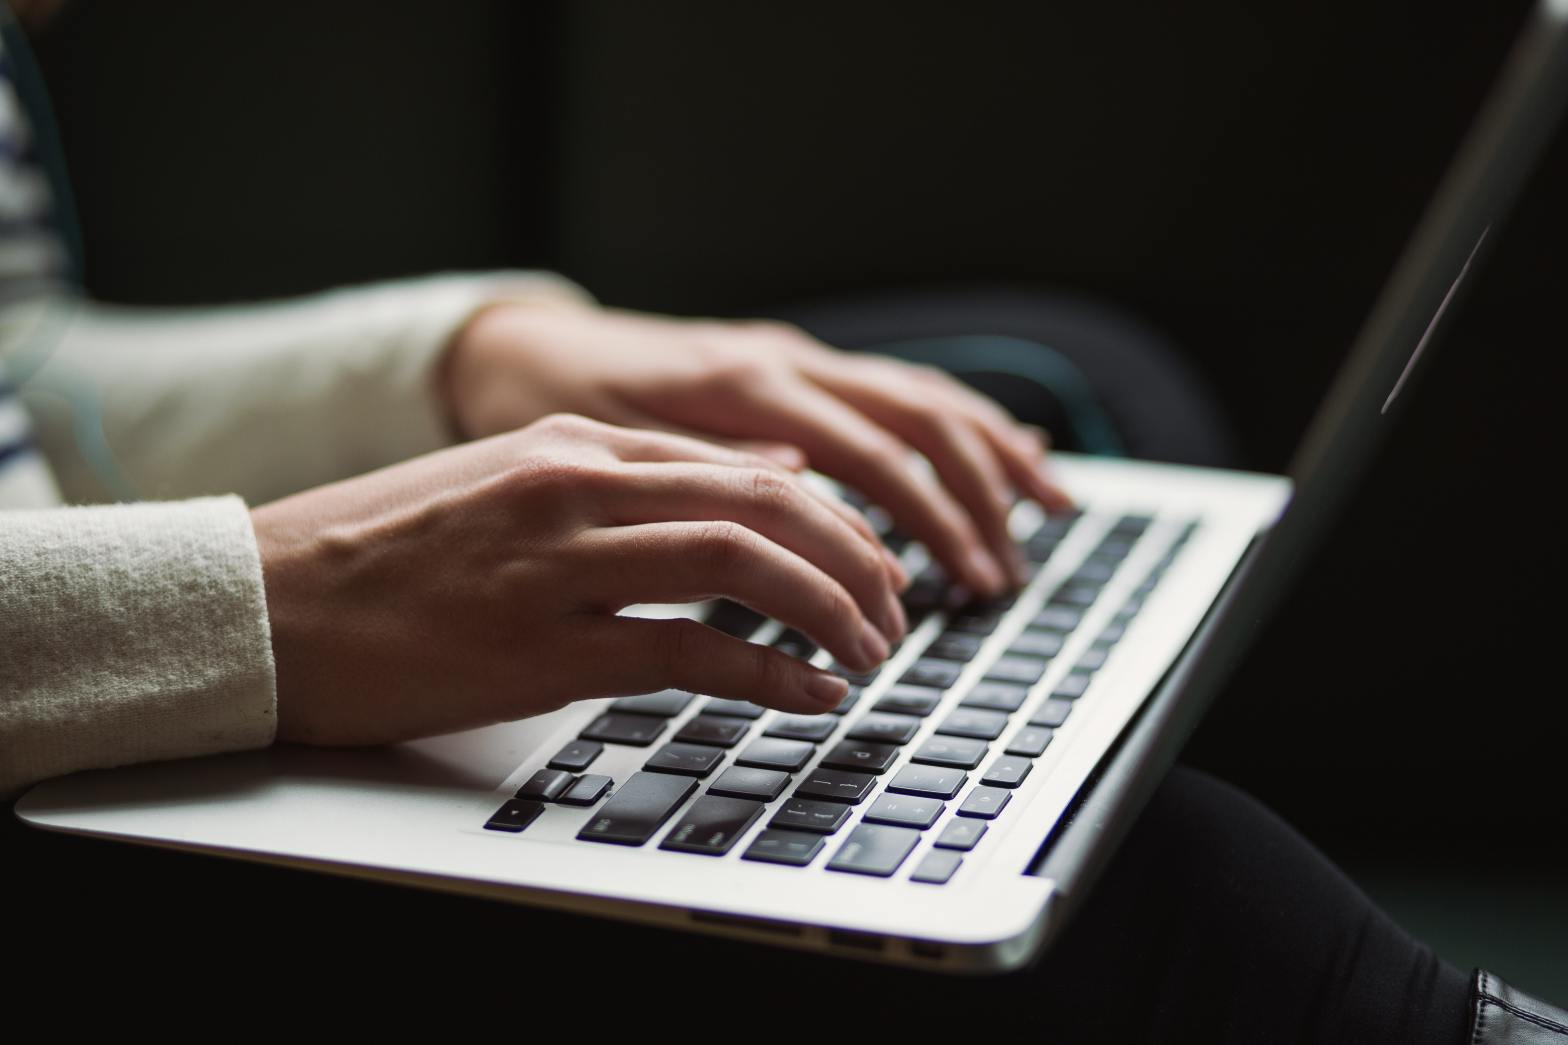 Image shows hands typing on a laptop keyboard